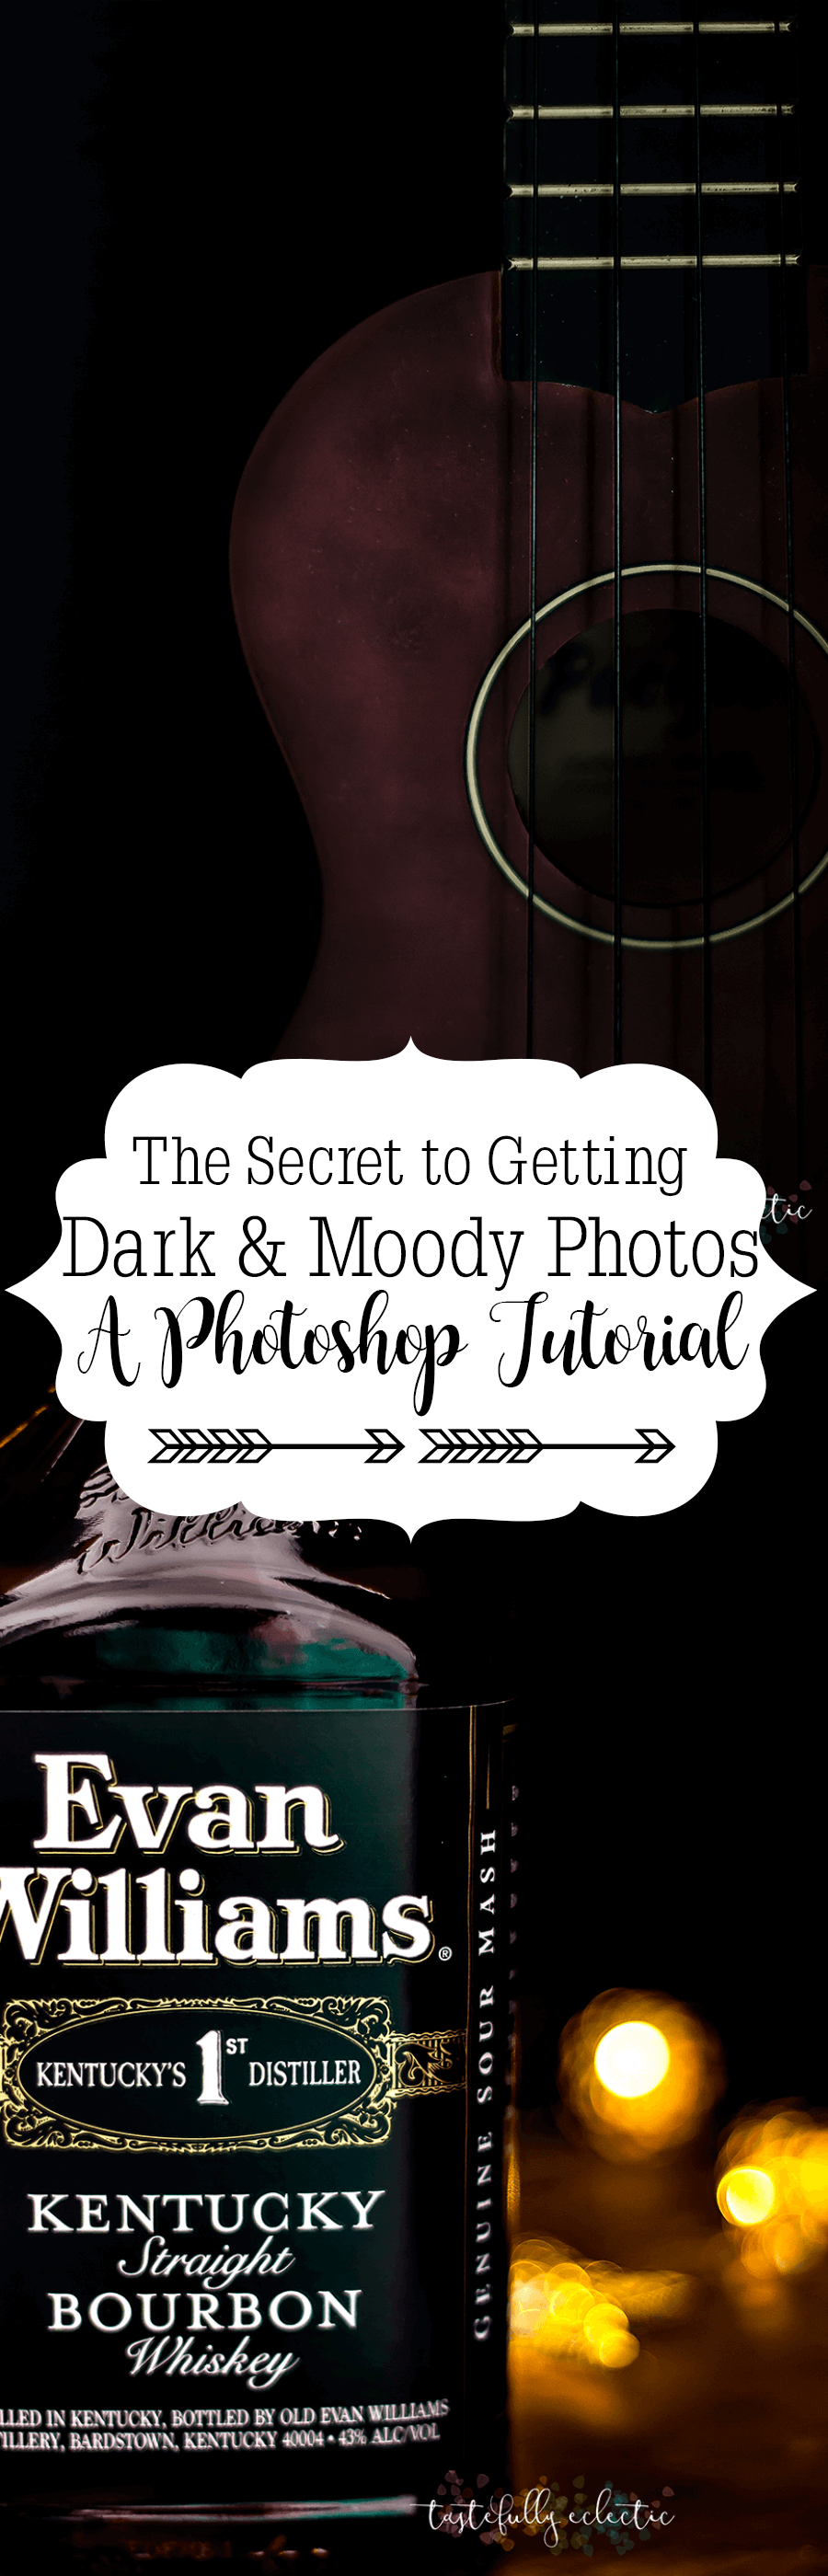 The Secret to Getting Dark Moody Photos with Photoshop